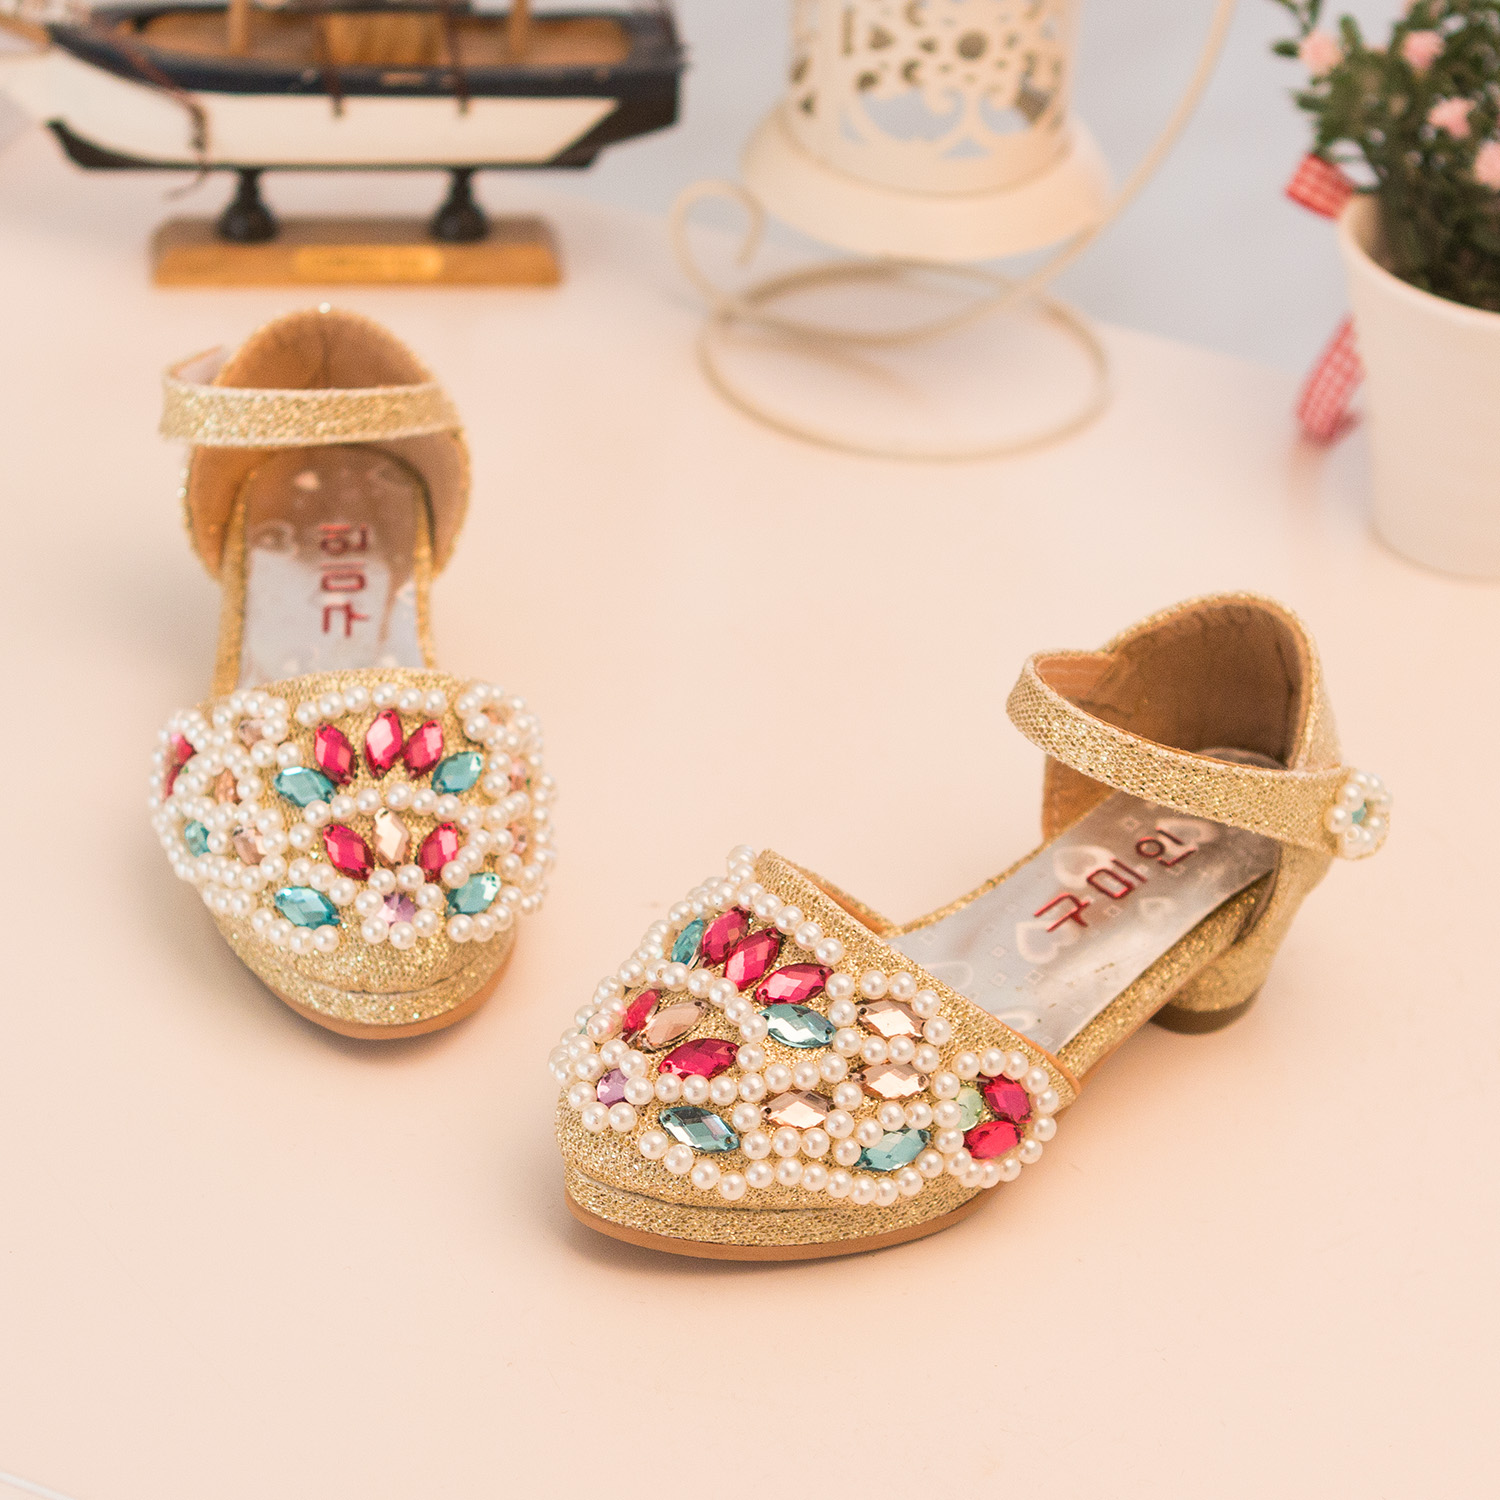 4543318e26 US $28.4 |High quality 2015 children princess shoes girls toe cap covering  single shoes baby girls sandals kids girl high heel shoes-in Sandals from  ...